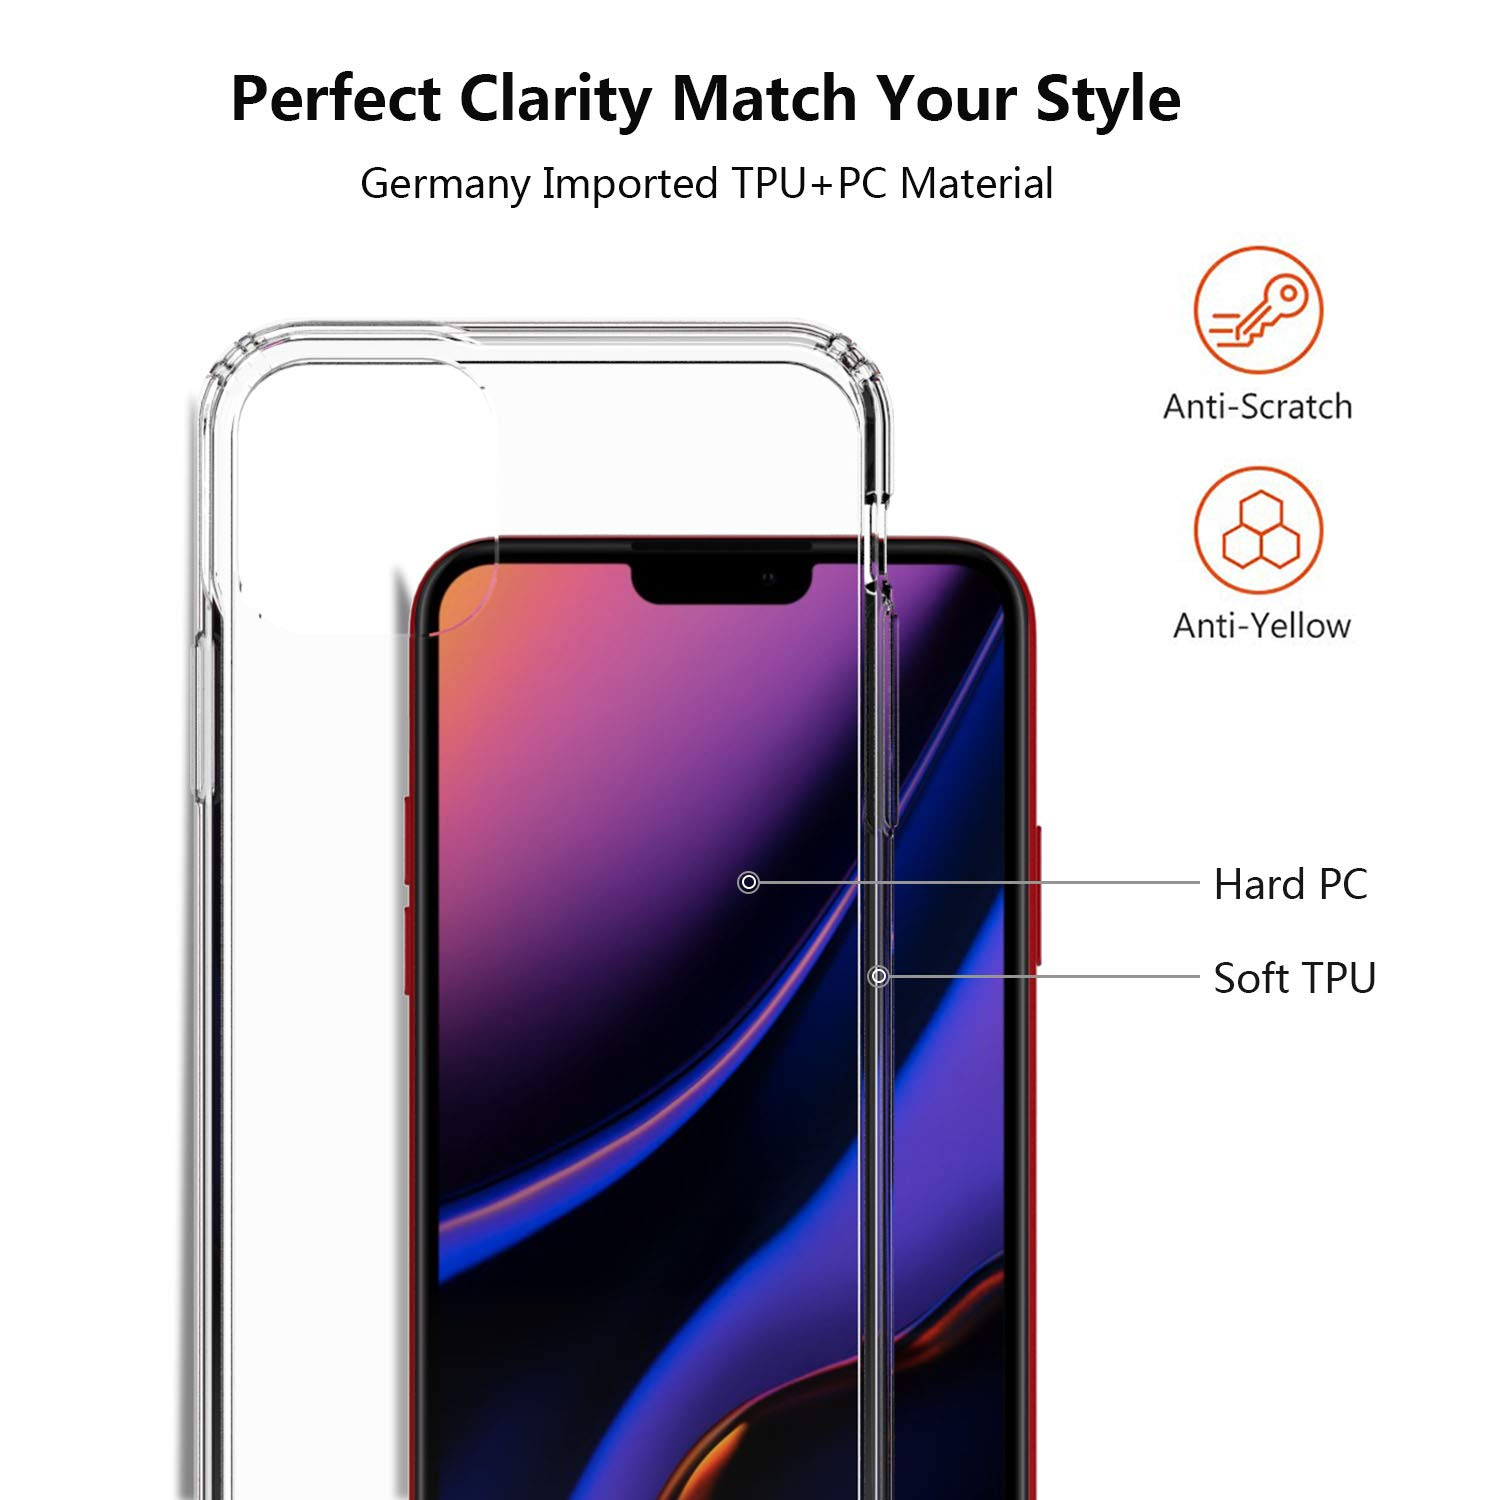 iPhone 11 Pro Max Case, CLONG Compatible with iPhone 11 Pro Max Case, Crystal Clear Anti-Scratch Shock Absorption TPU/PC Bumper Protective Cover Case for 6.5inch Apple iPhone 11 Pro Max, HD Clear